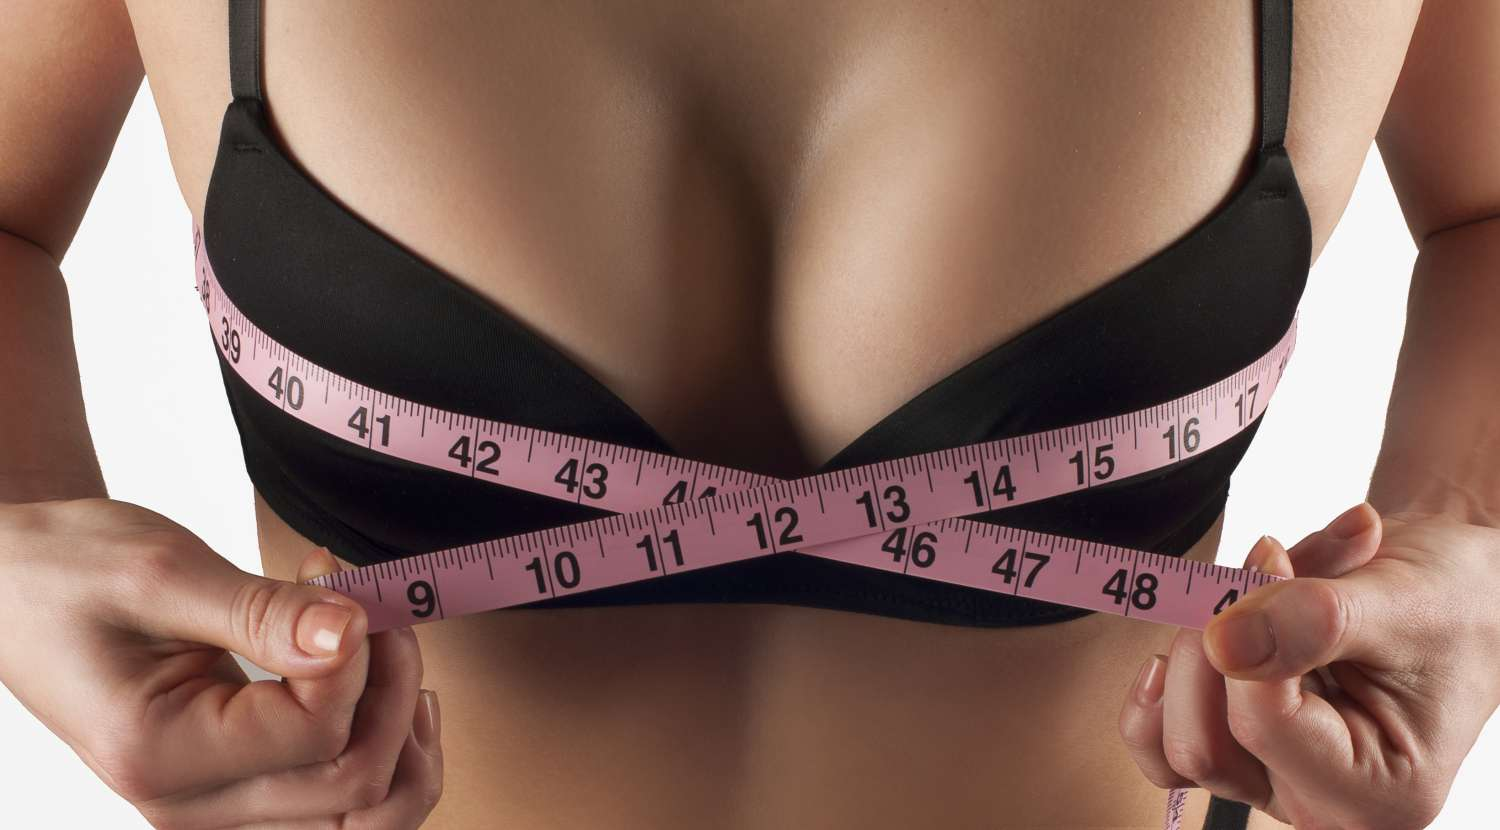 Unsatisfactory shape or size after breast augmentation